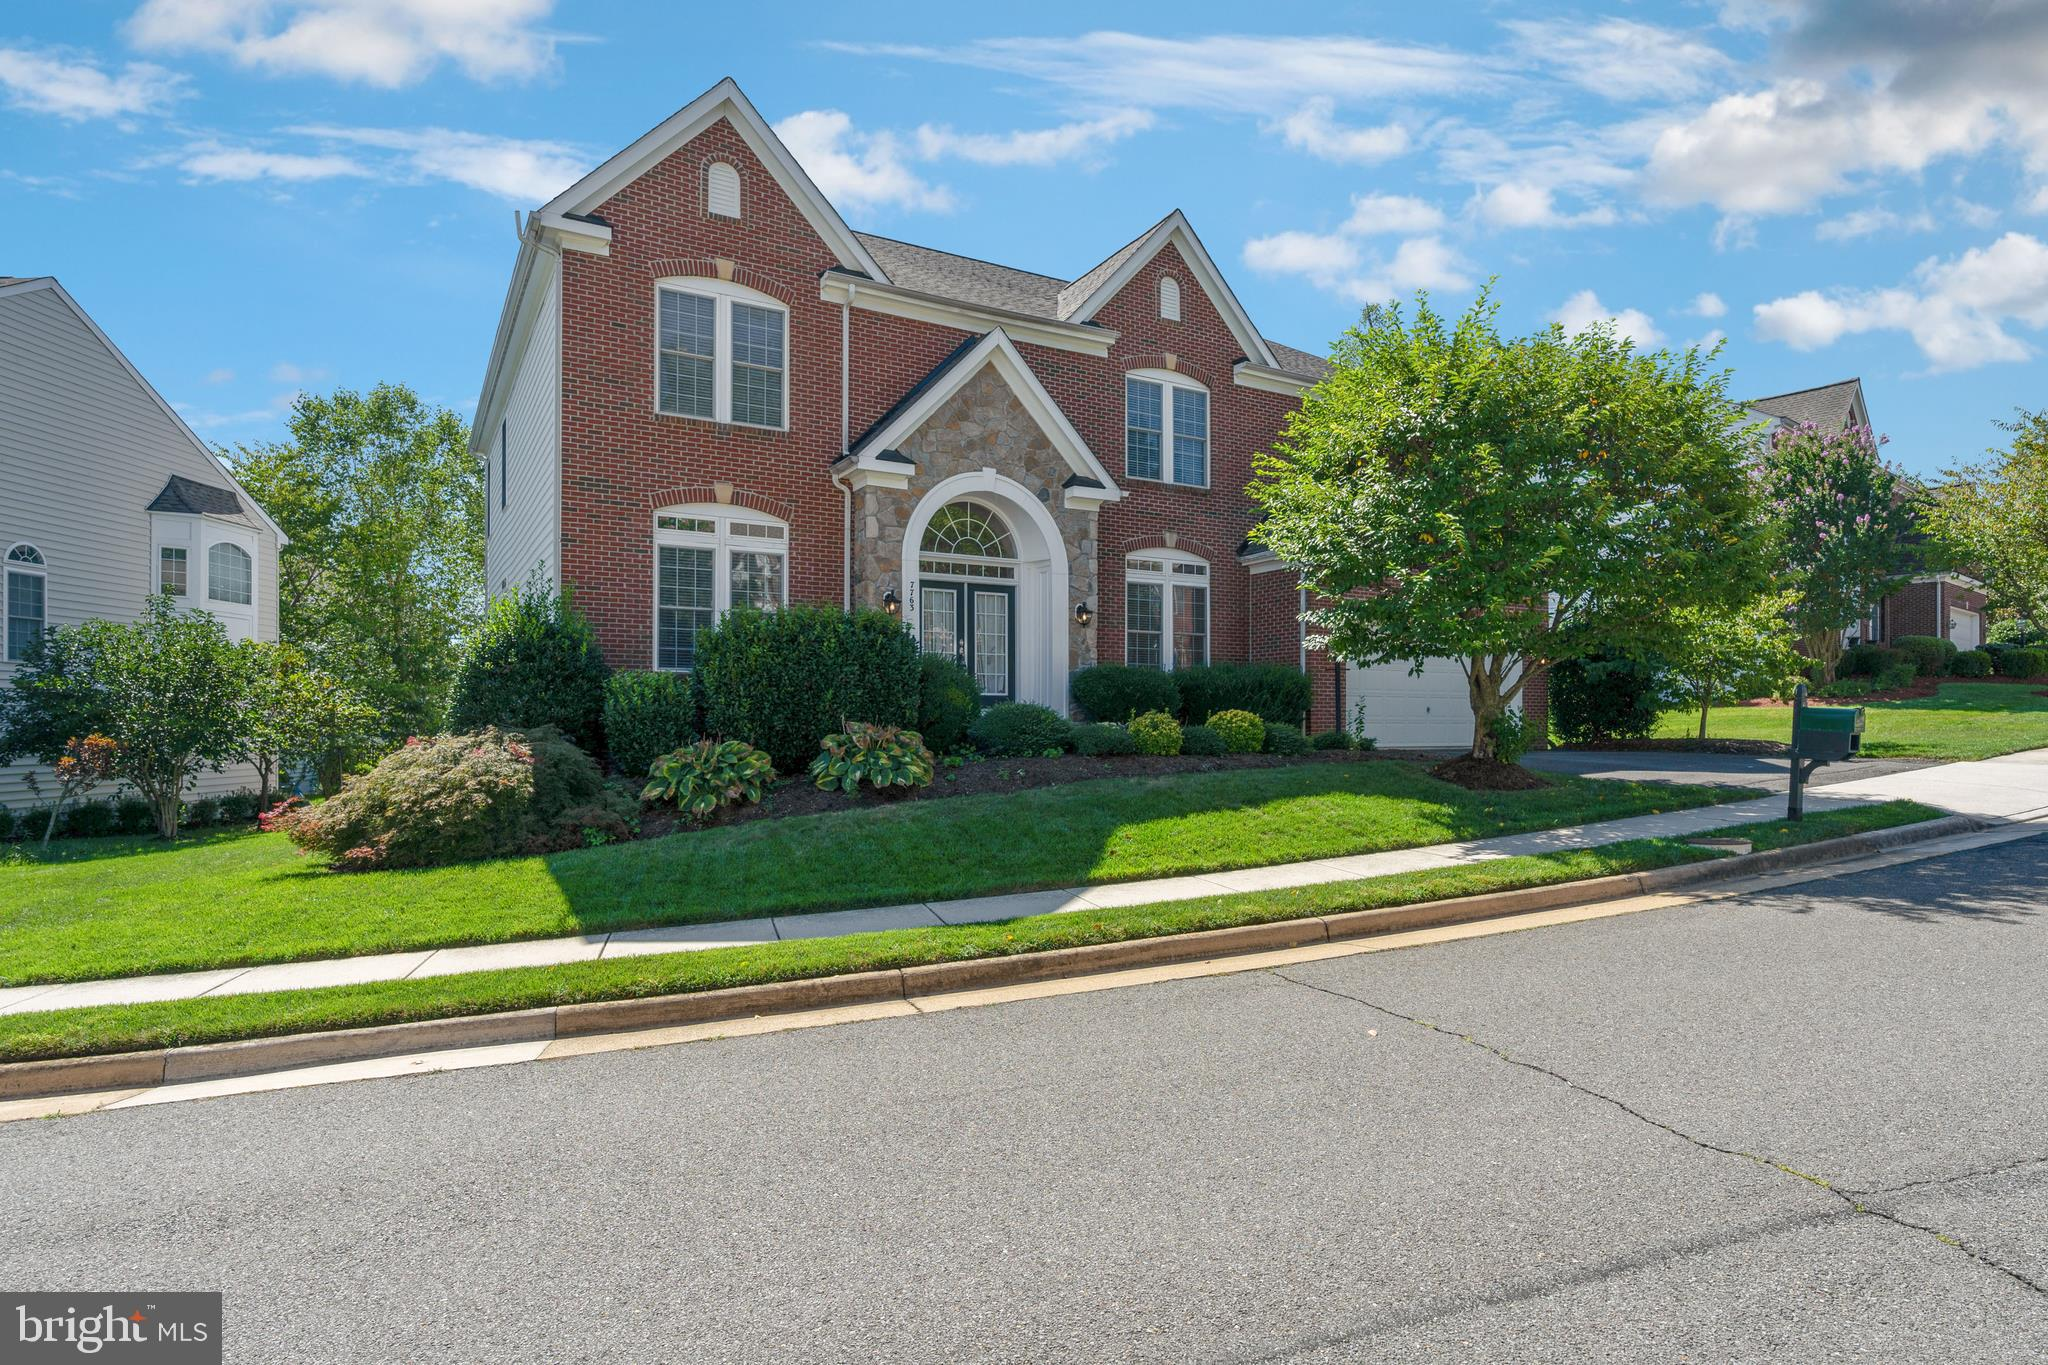 Price Reduced  and 10k credit toward carpet & cosmetic paint. One of the largest executive homes in Presidential Hills with 4,840 sqft of above grade living space and a fully finished basement to bring approximately 7,000 sqft of total living space. Home features 10 ft ceiling on main level and 9 ft ceiling on the upper level, a gourmet kitchen with high-end stainless steel appliances, granite counter-tops, porcelain tile floors and custom built cabinets.  Plenty of space to entertain and host gatherings, this home has a spacious great room on the main level and a second family room on the upper level.  Exterior of the home features a low maintenance composite wood deck and a 6 zone in-ground sprinkler system.  Recent renovations to the home include kitchen (2015), master bath (2015), two new HVAC systems (2016), and a new roof (2018).  Easy access to 395/495 and 2 miles from the metro.